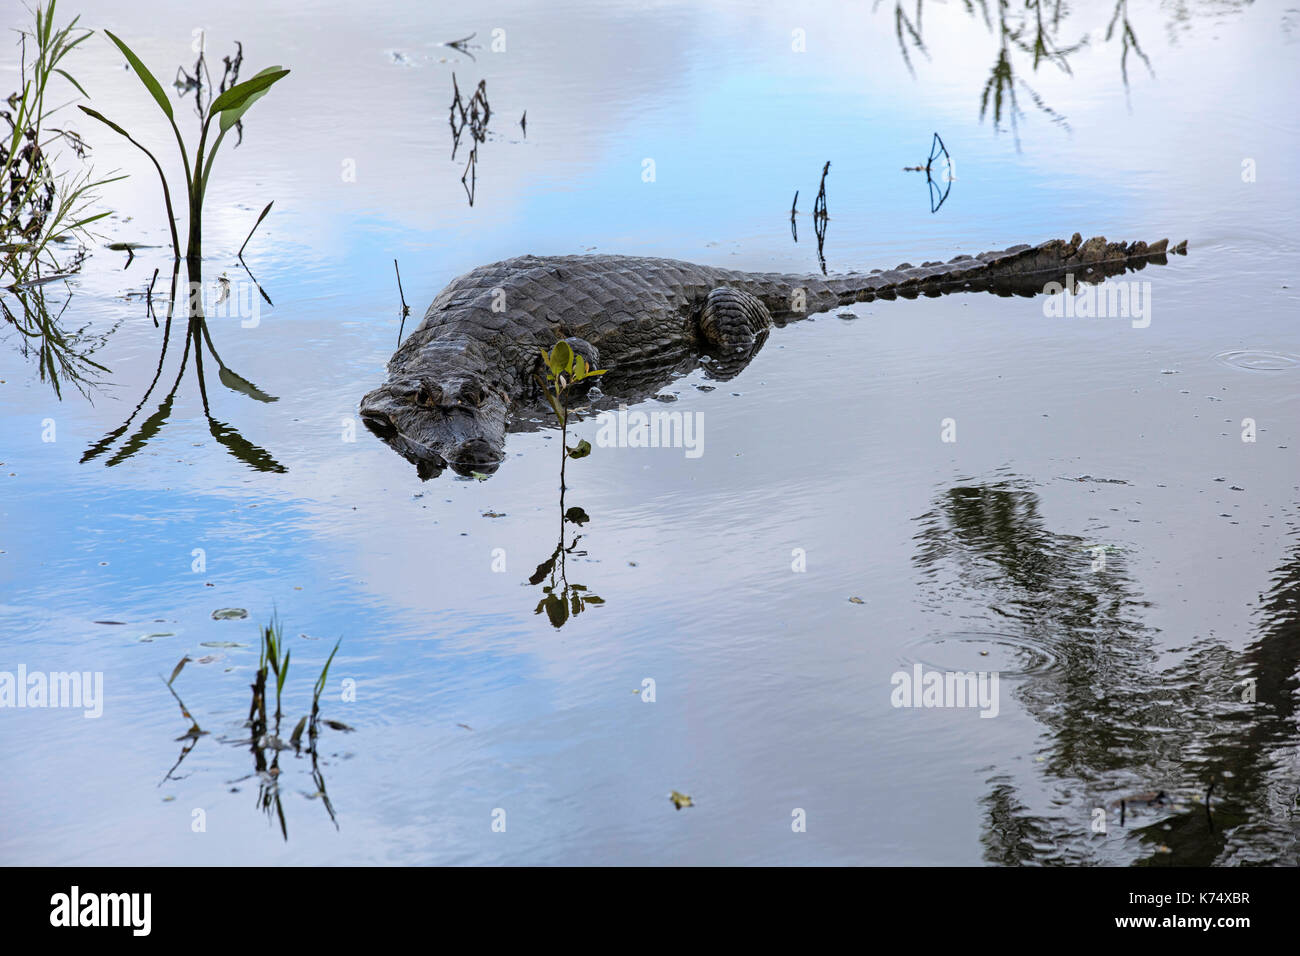 Black caiman (Melanosuchus niger), large crocodilian of the Amazon basin in South America - Stock Image